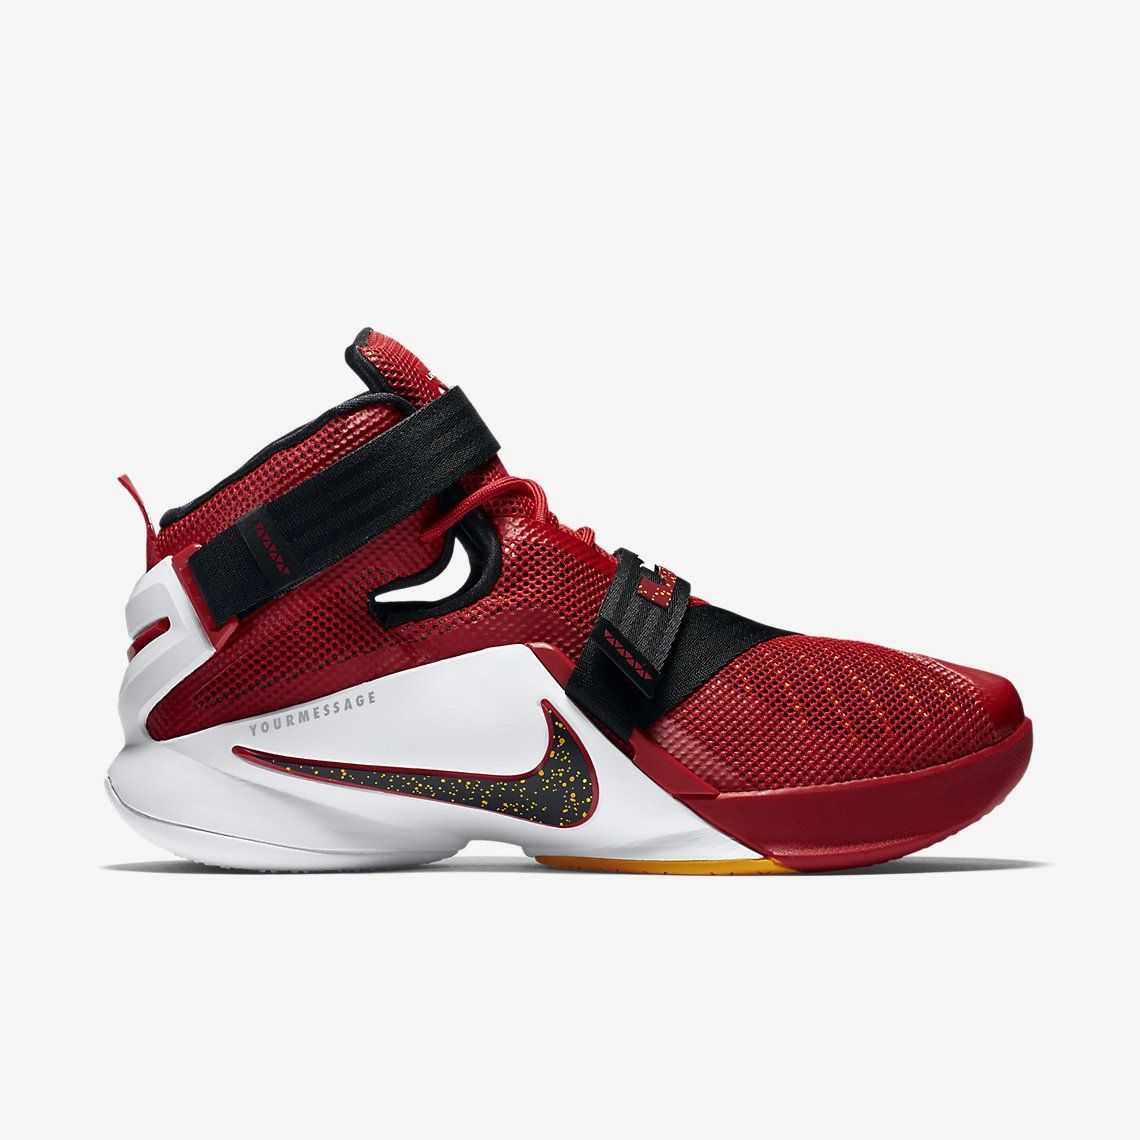 Nike Zoom LeBron Soldier 9 Men's Basketball Shoe.